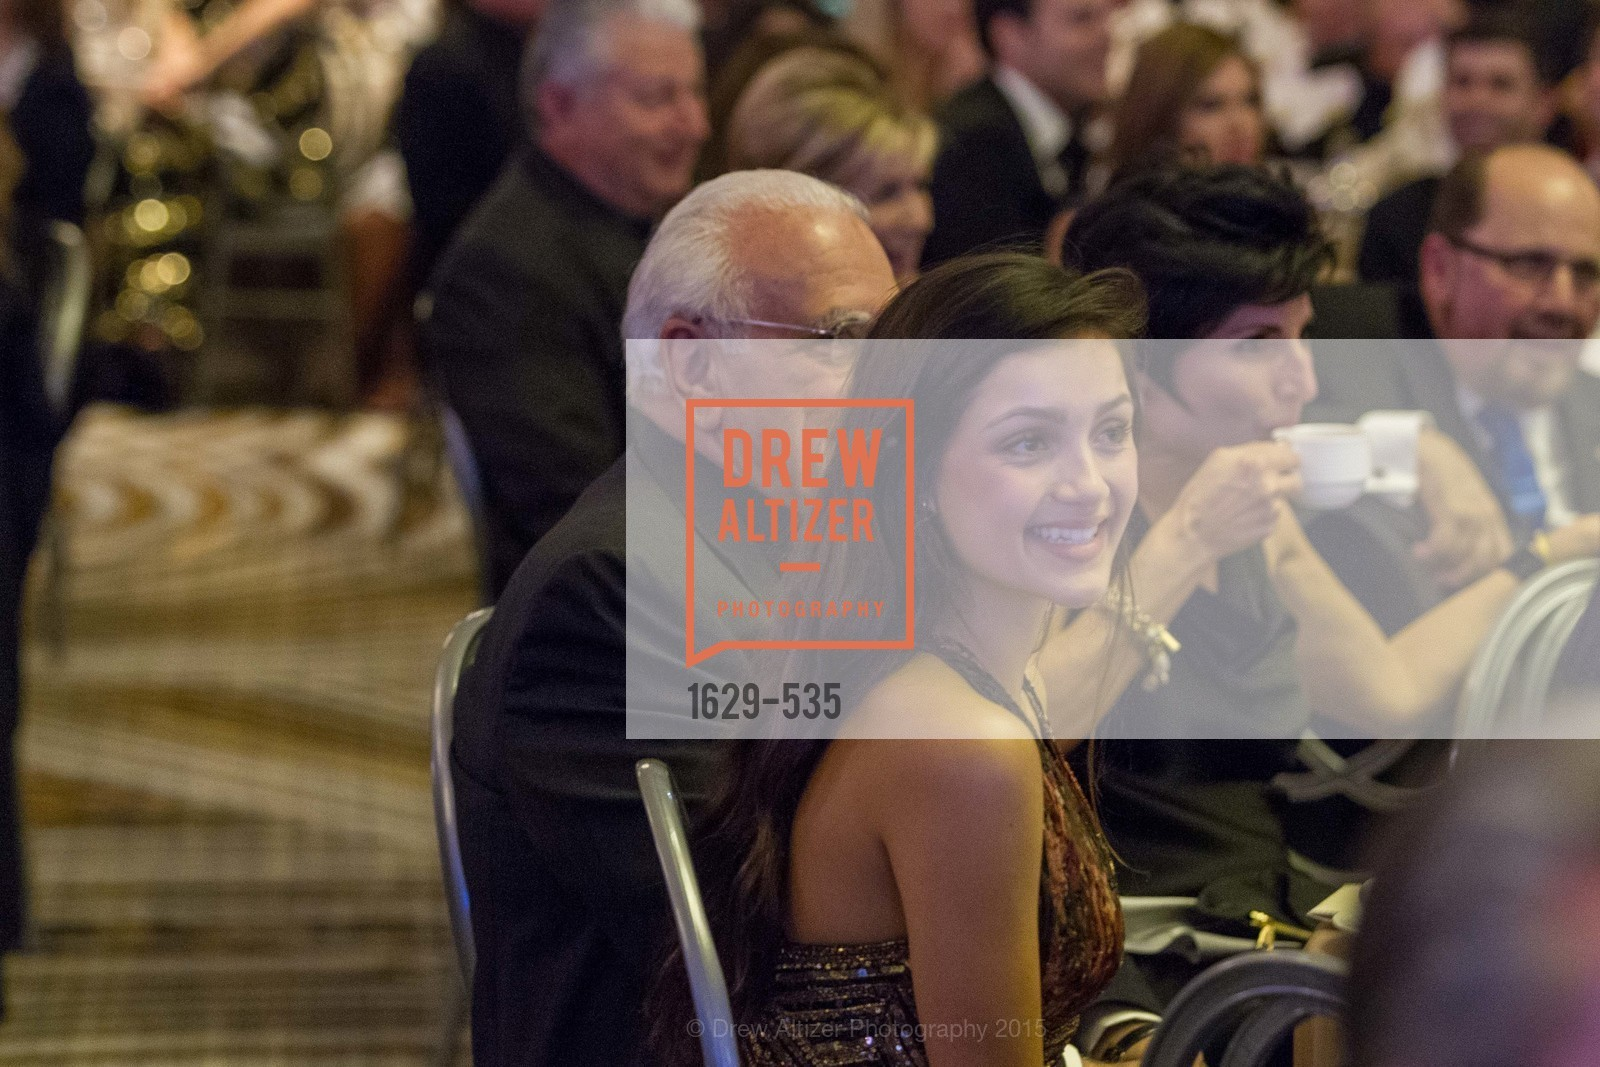 Extras, Hellenic Charity Ball, November 14th, 2015, Photo,Drew Altizer, Drew Altizer Photography, full-service event agency, private events, San Francisco photographer, photographer California